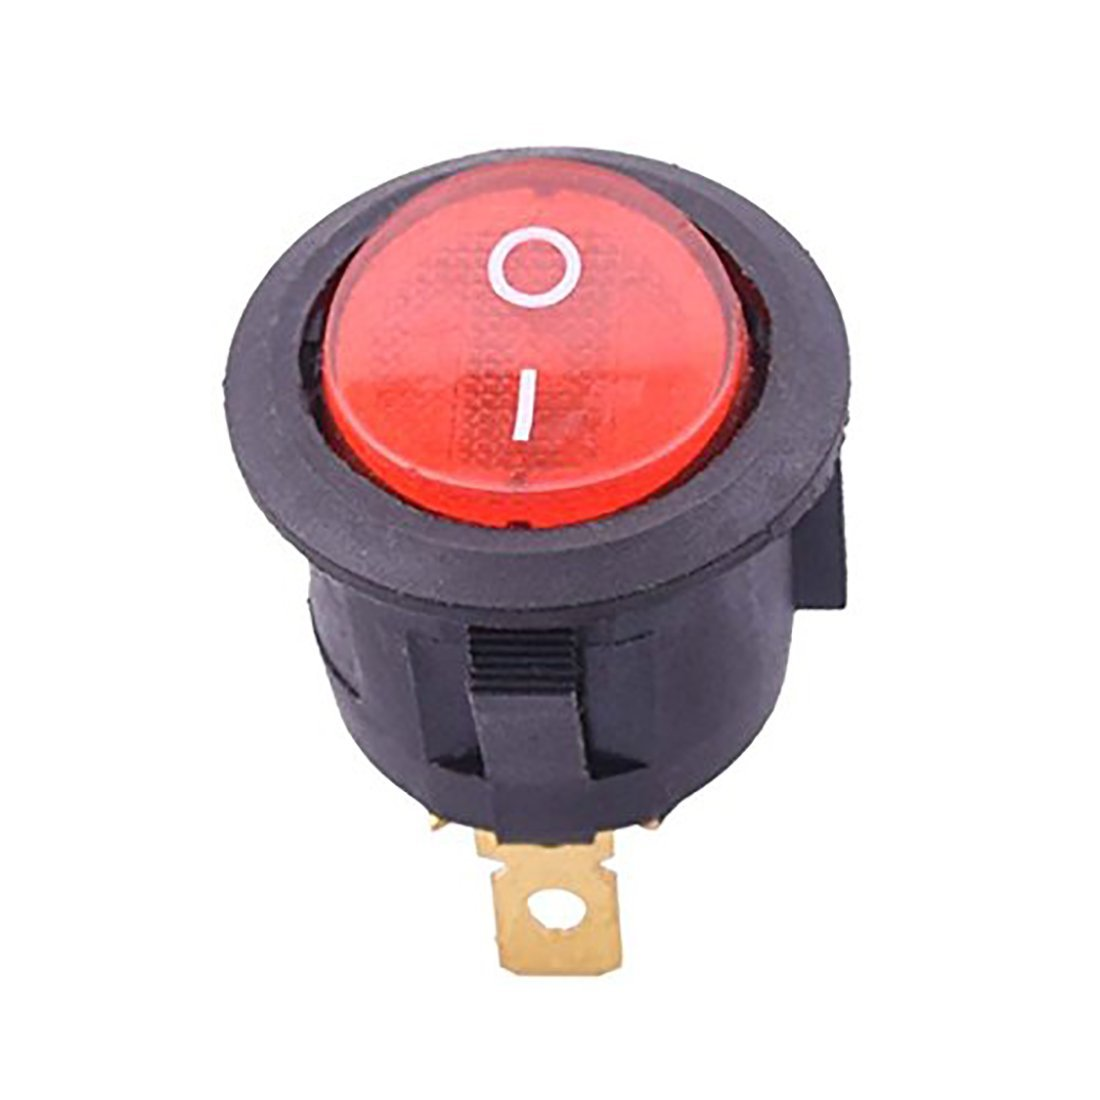 Flyshop 5 pcs Red Round Button 2 Pin SPST On/Off Rocker Switch AC 125V/10A 250V/6A